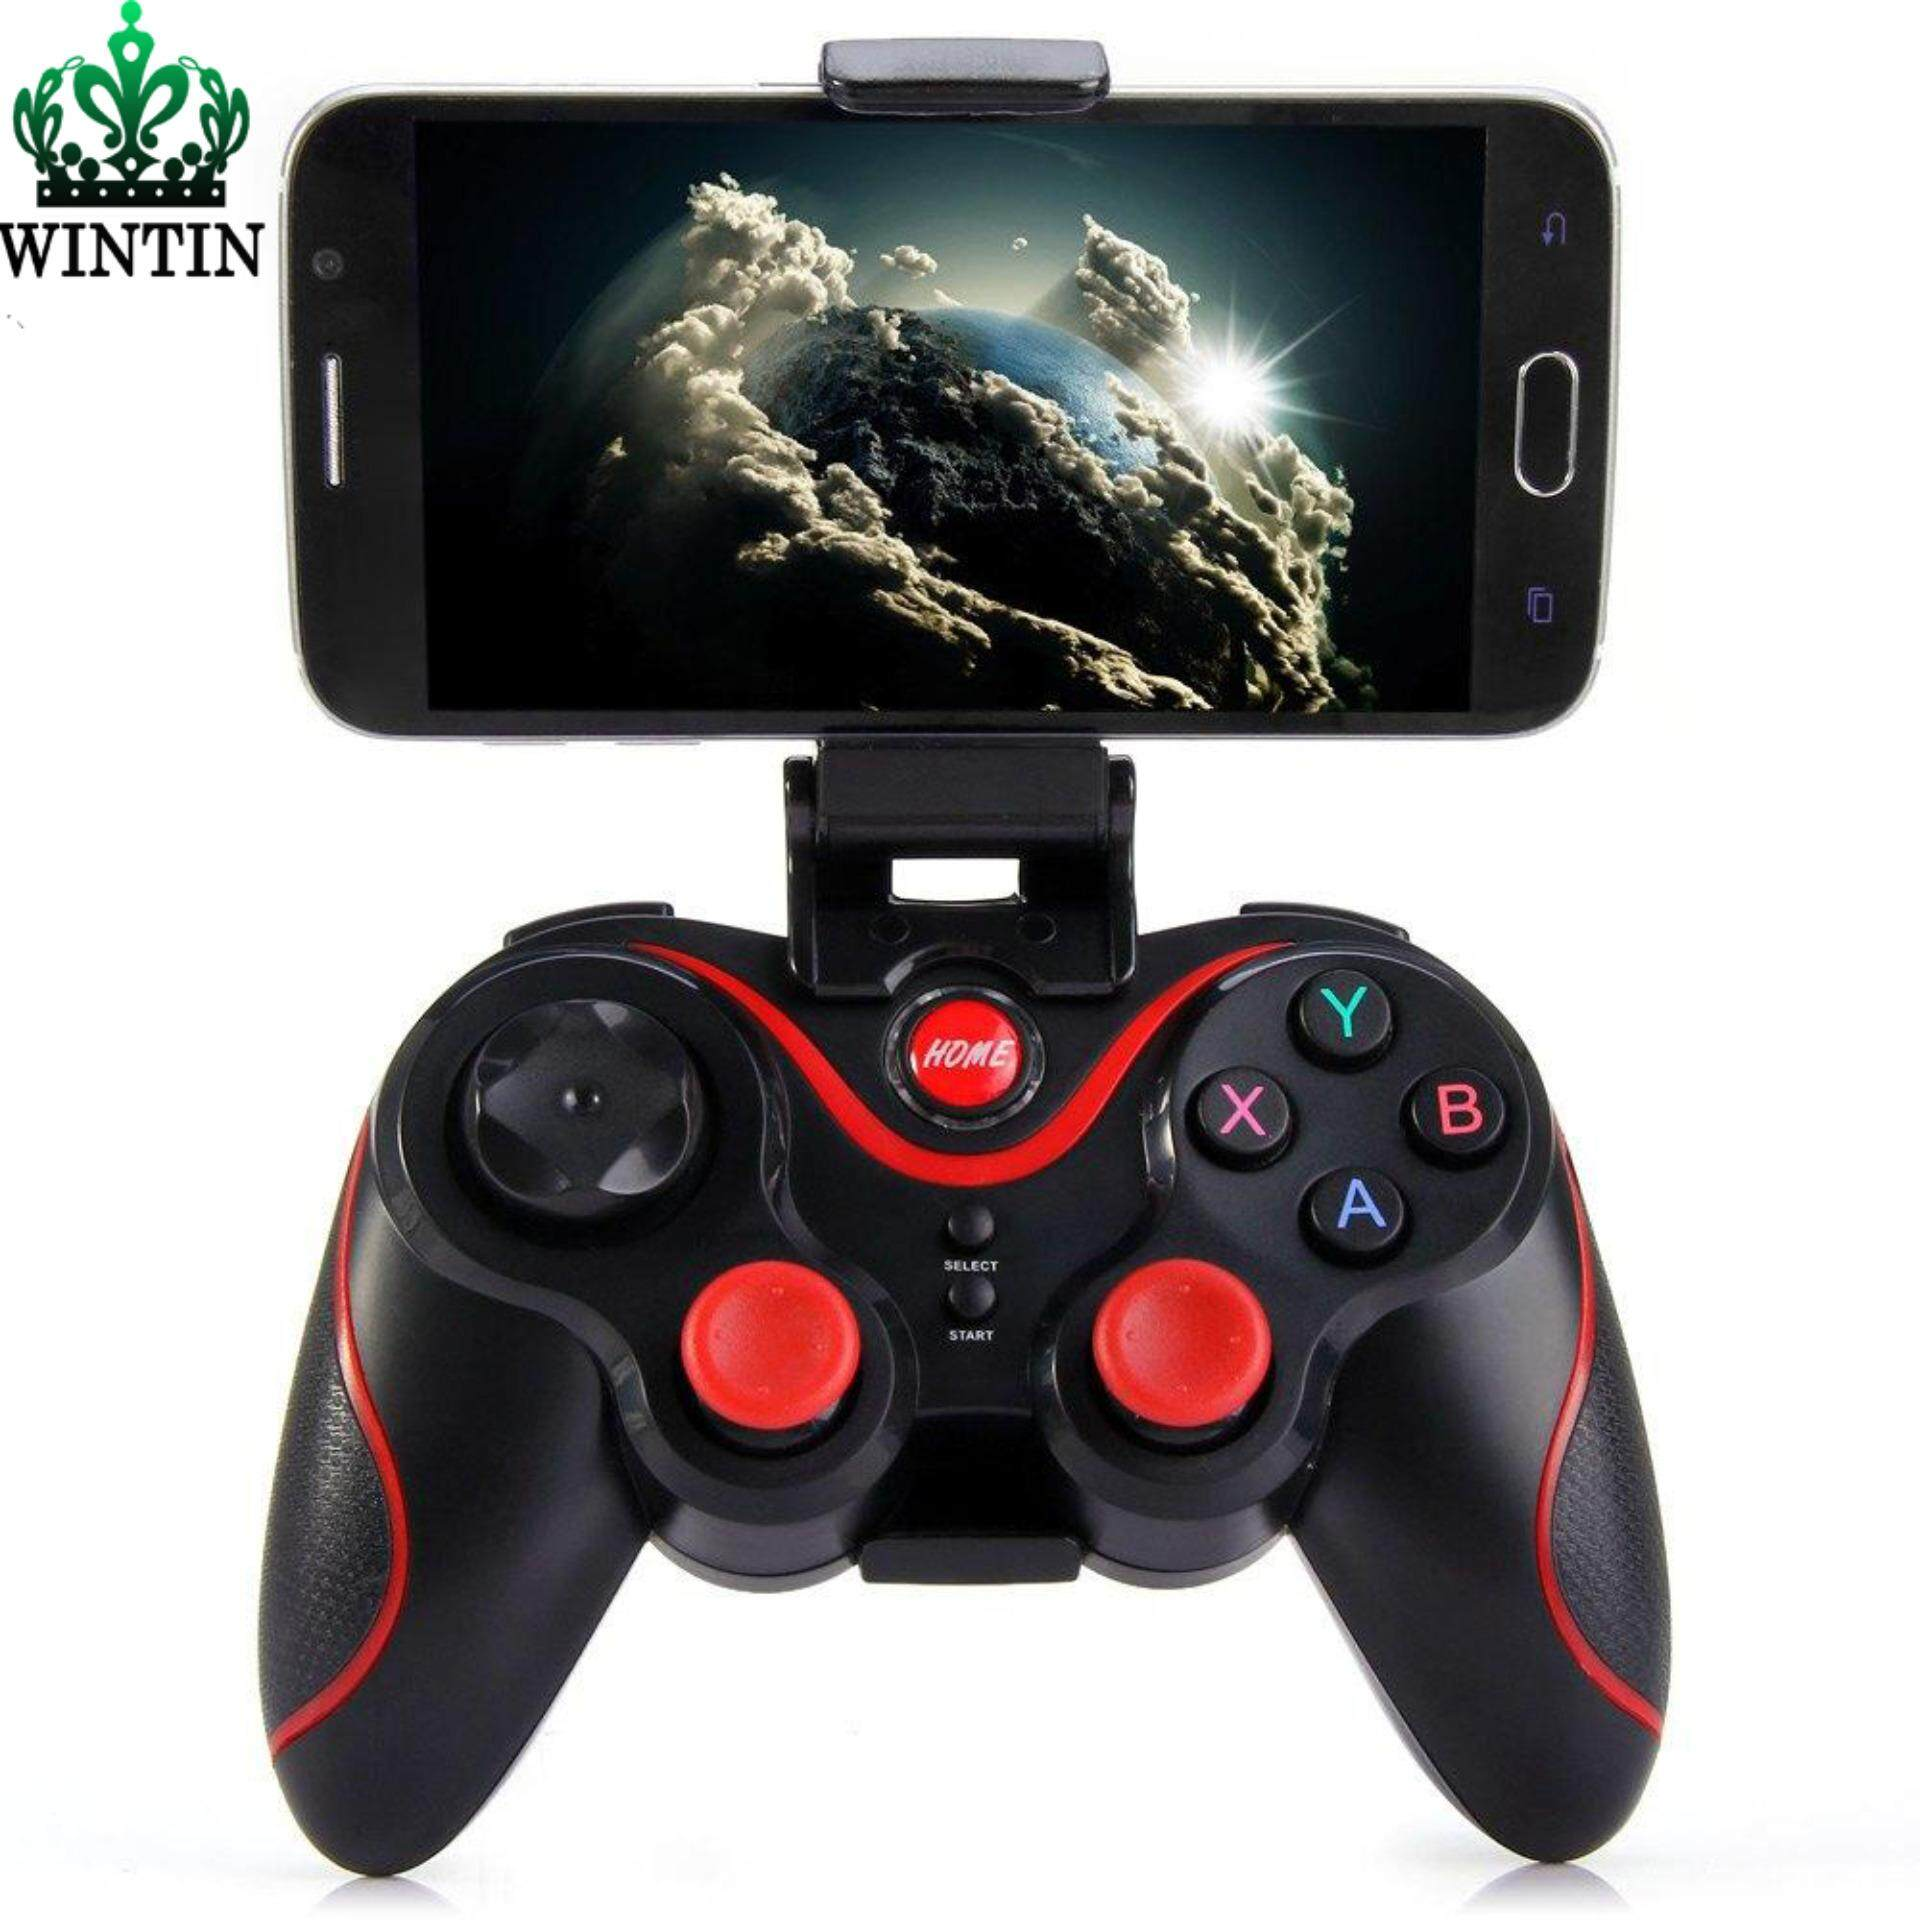 Wintin T3 Game Controller Smart Wireless Joystick Bluetooth Android Gamepad Gaming Remote Control Eat Chicken for